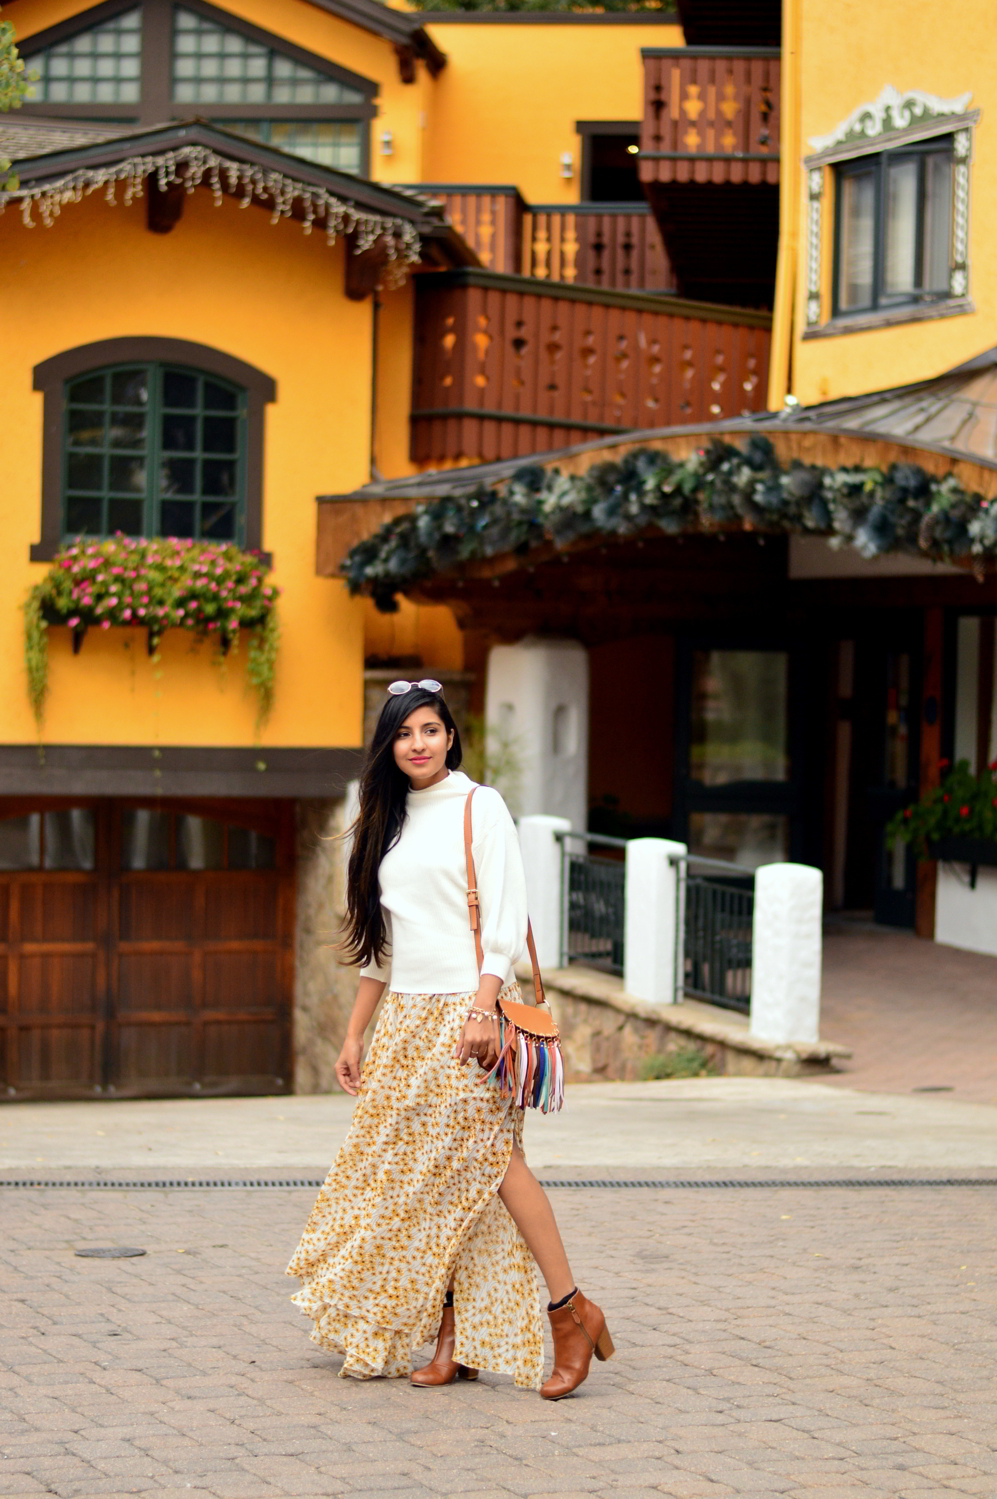 turtleneck-sweater-floral-maxi-dress-fall-layers-style-blogger-travel-Vail-Colorado 3